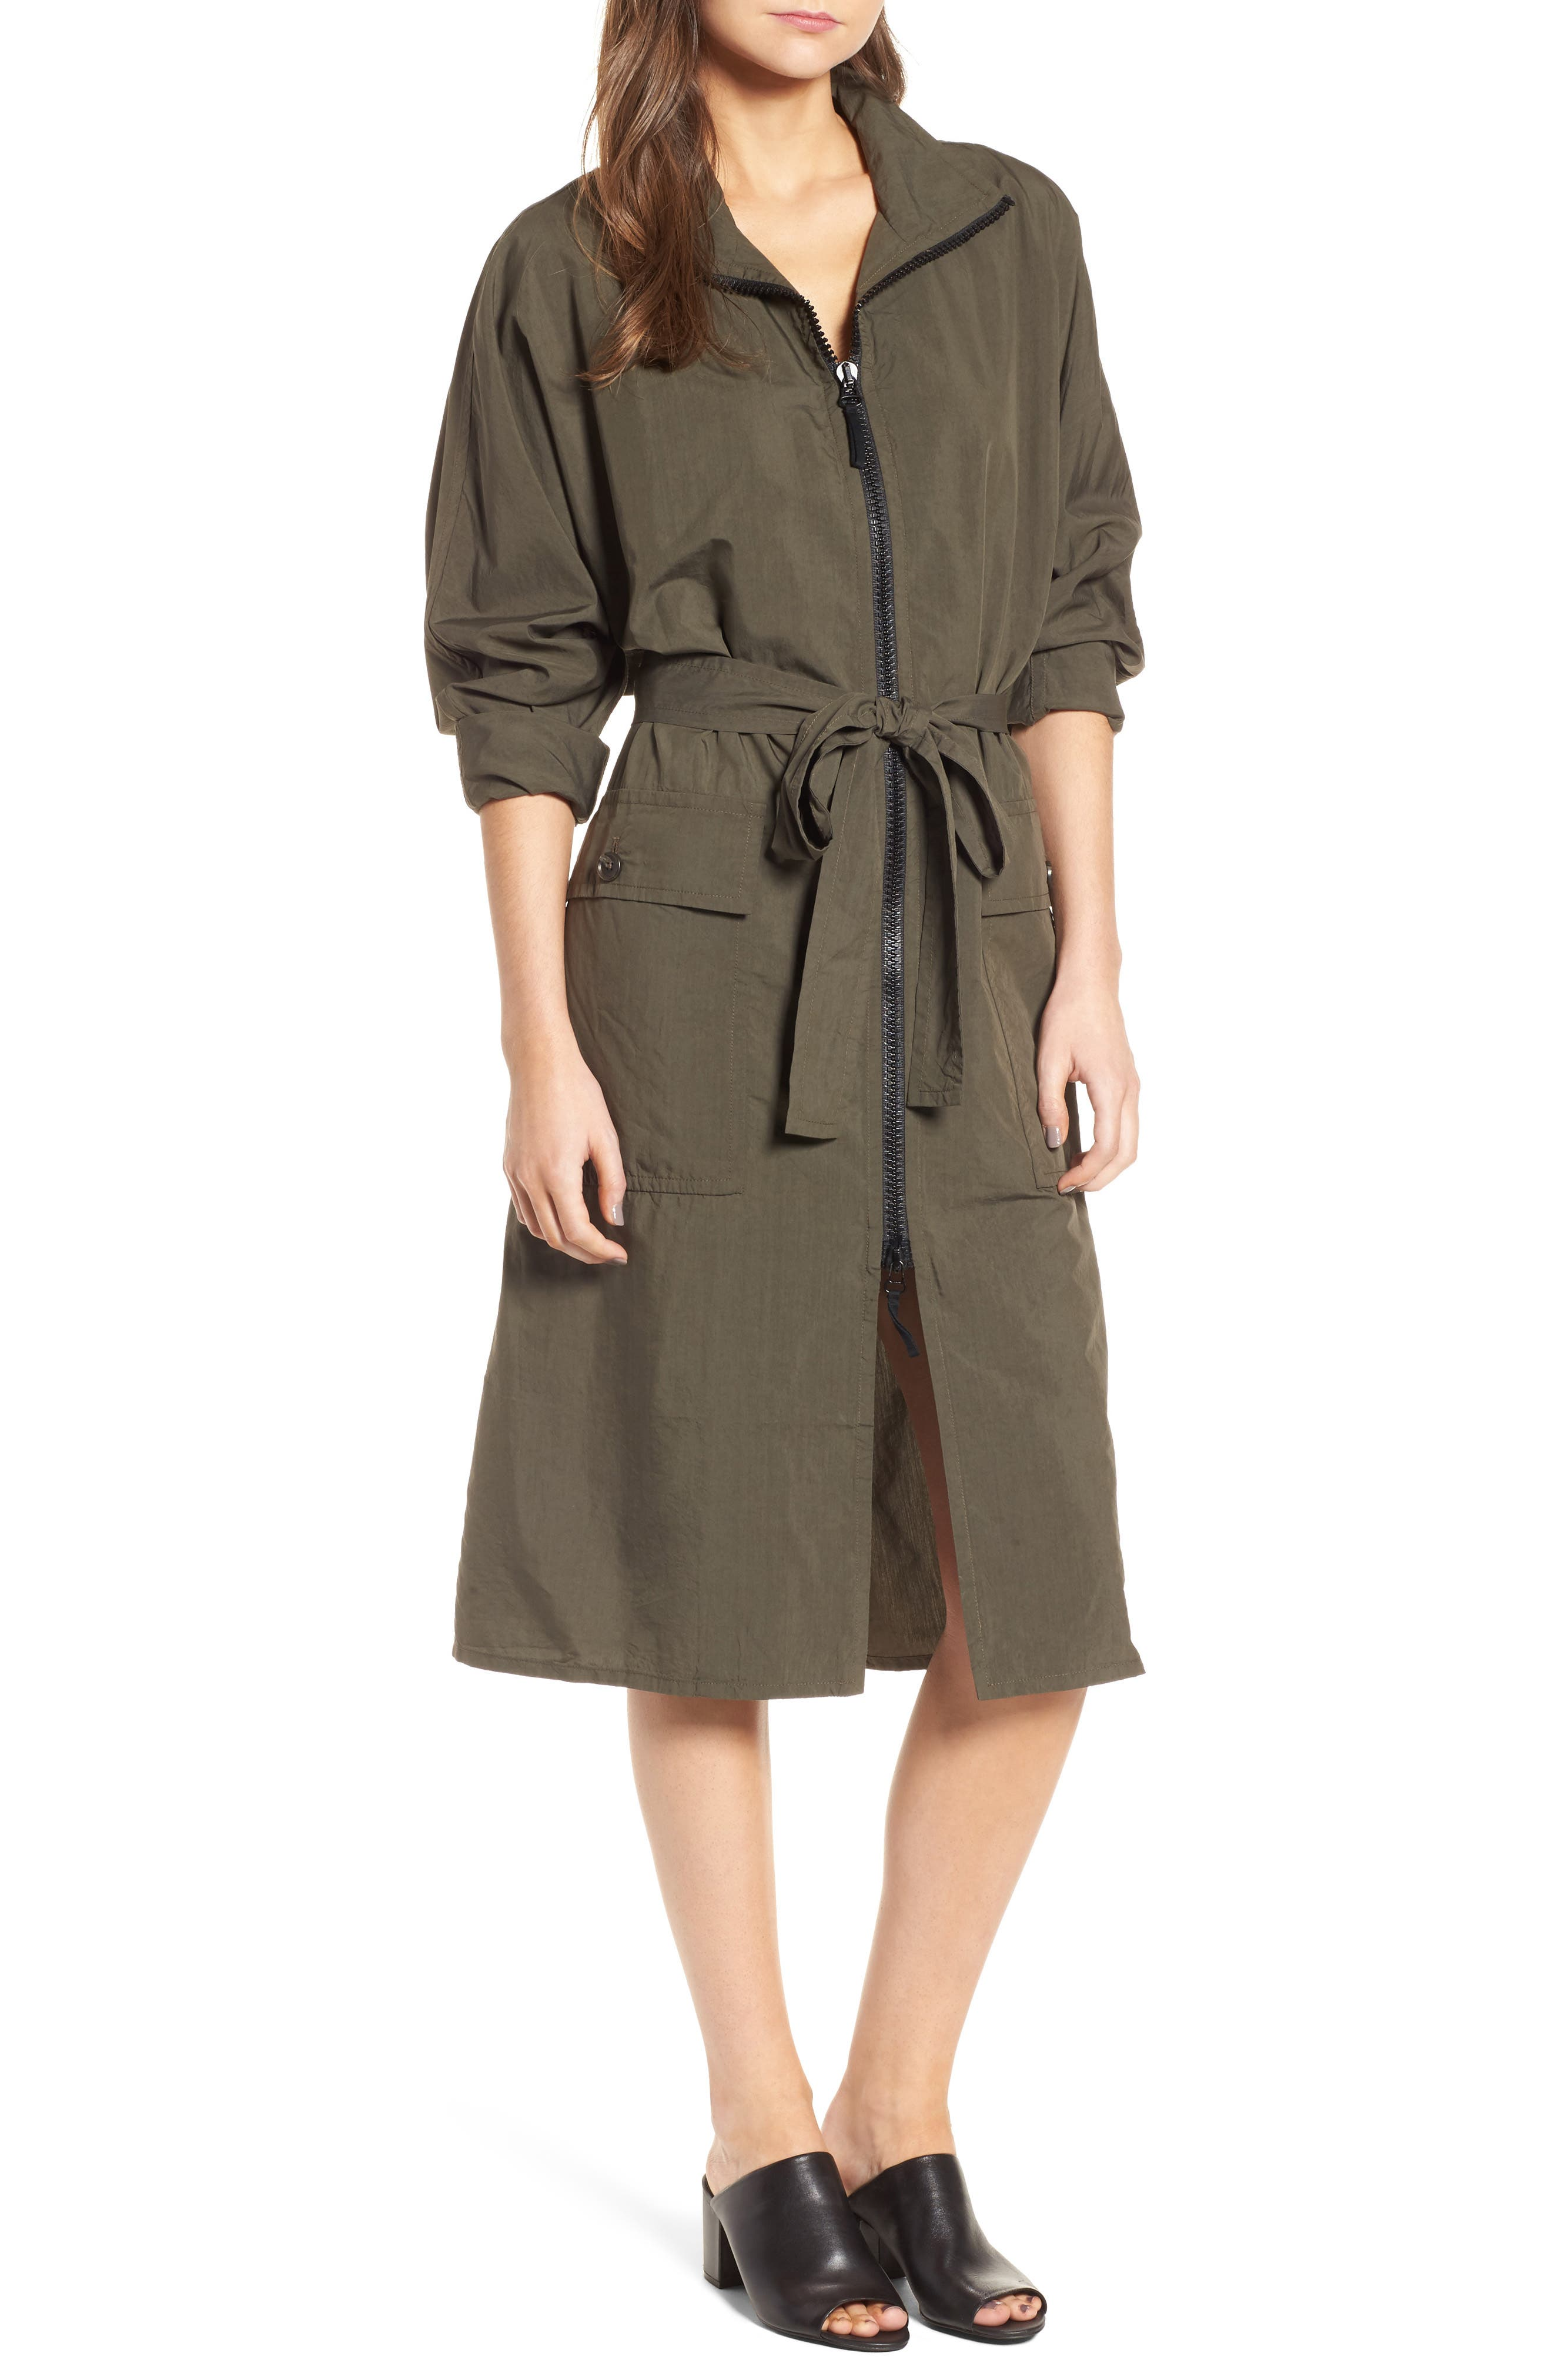 Alternate Image 1 Selected - James Perse Zip Front Jacket Dress